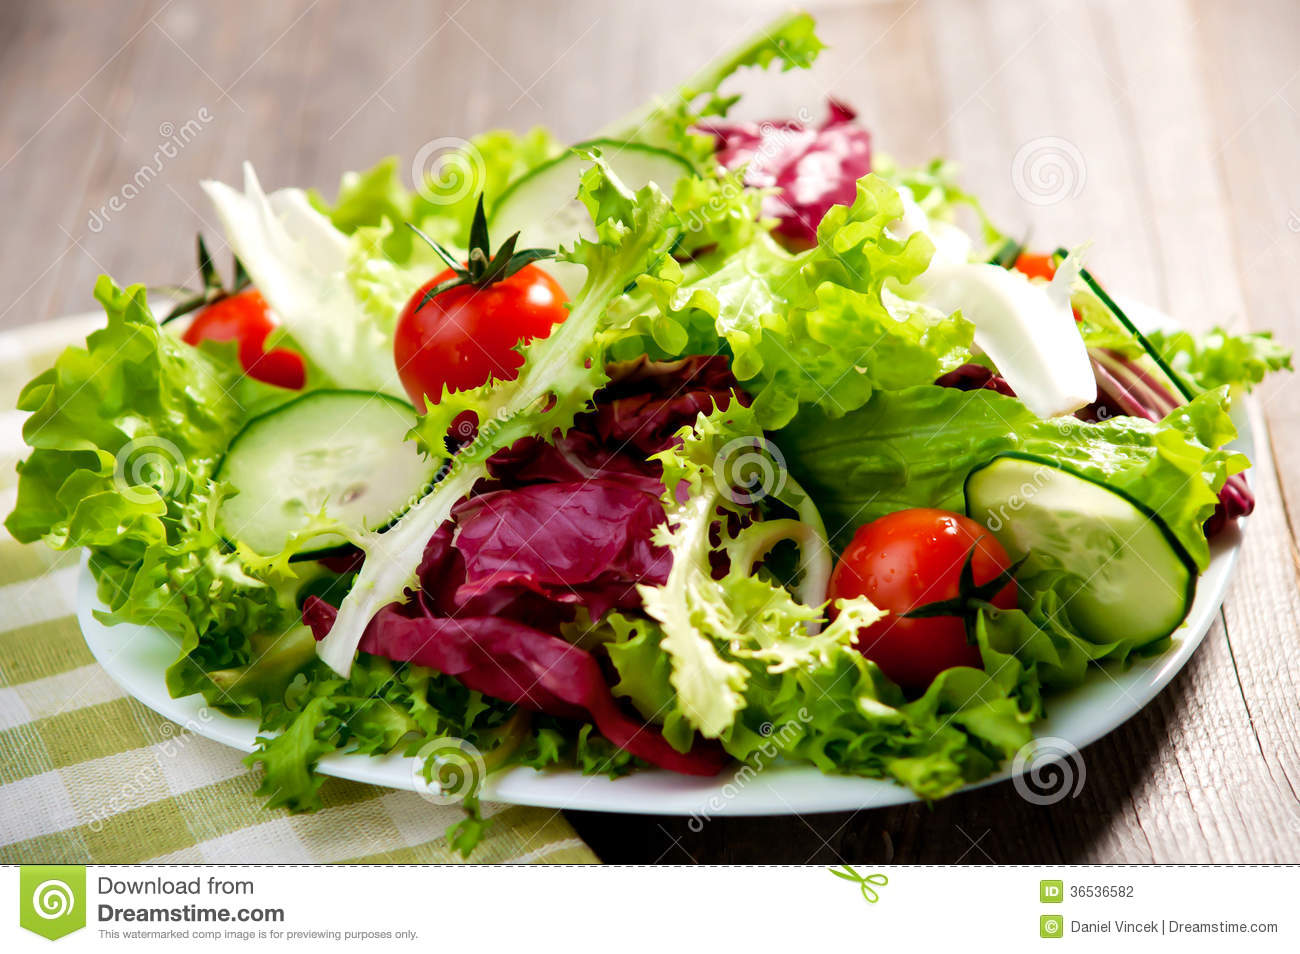 Mix salad with fresh vegetable on wood table.